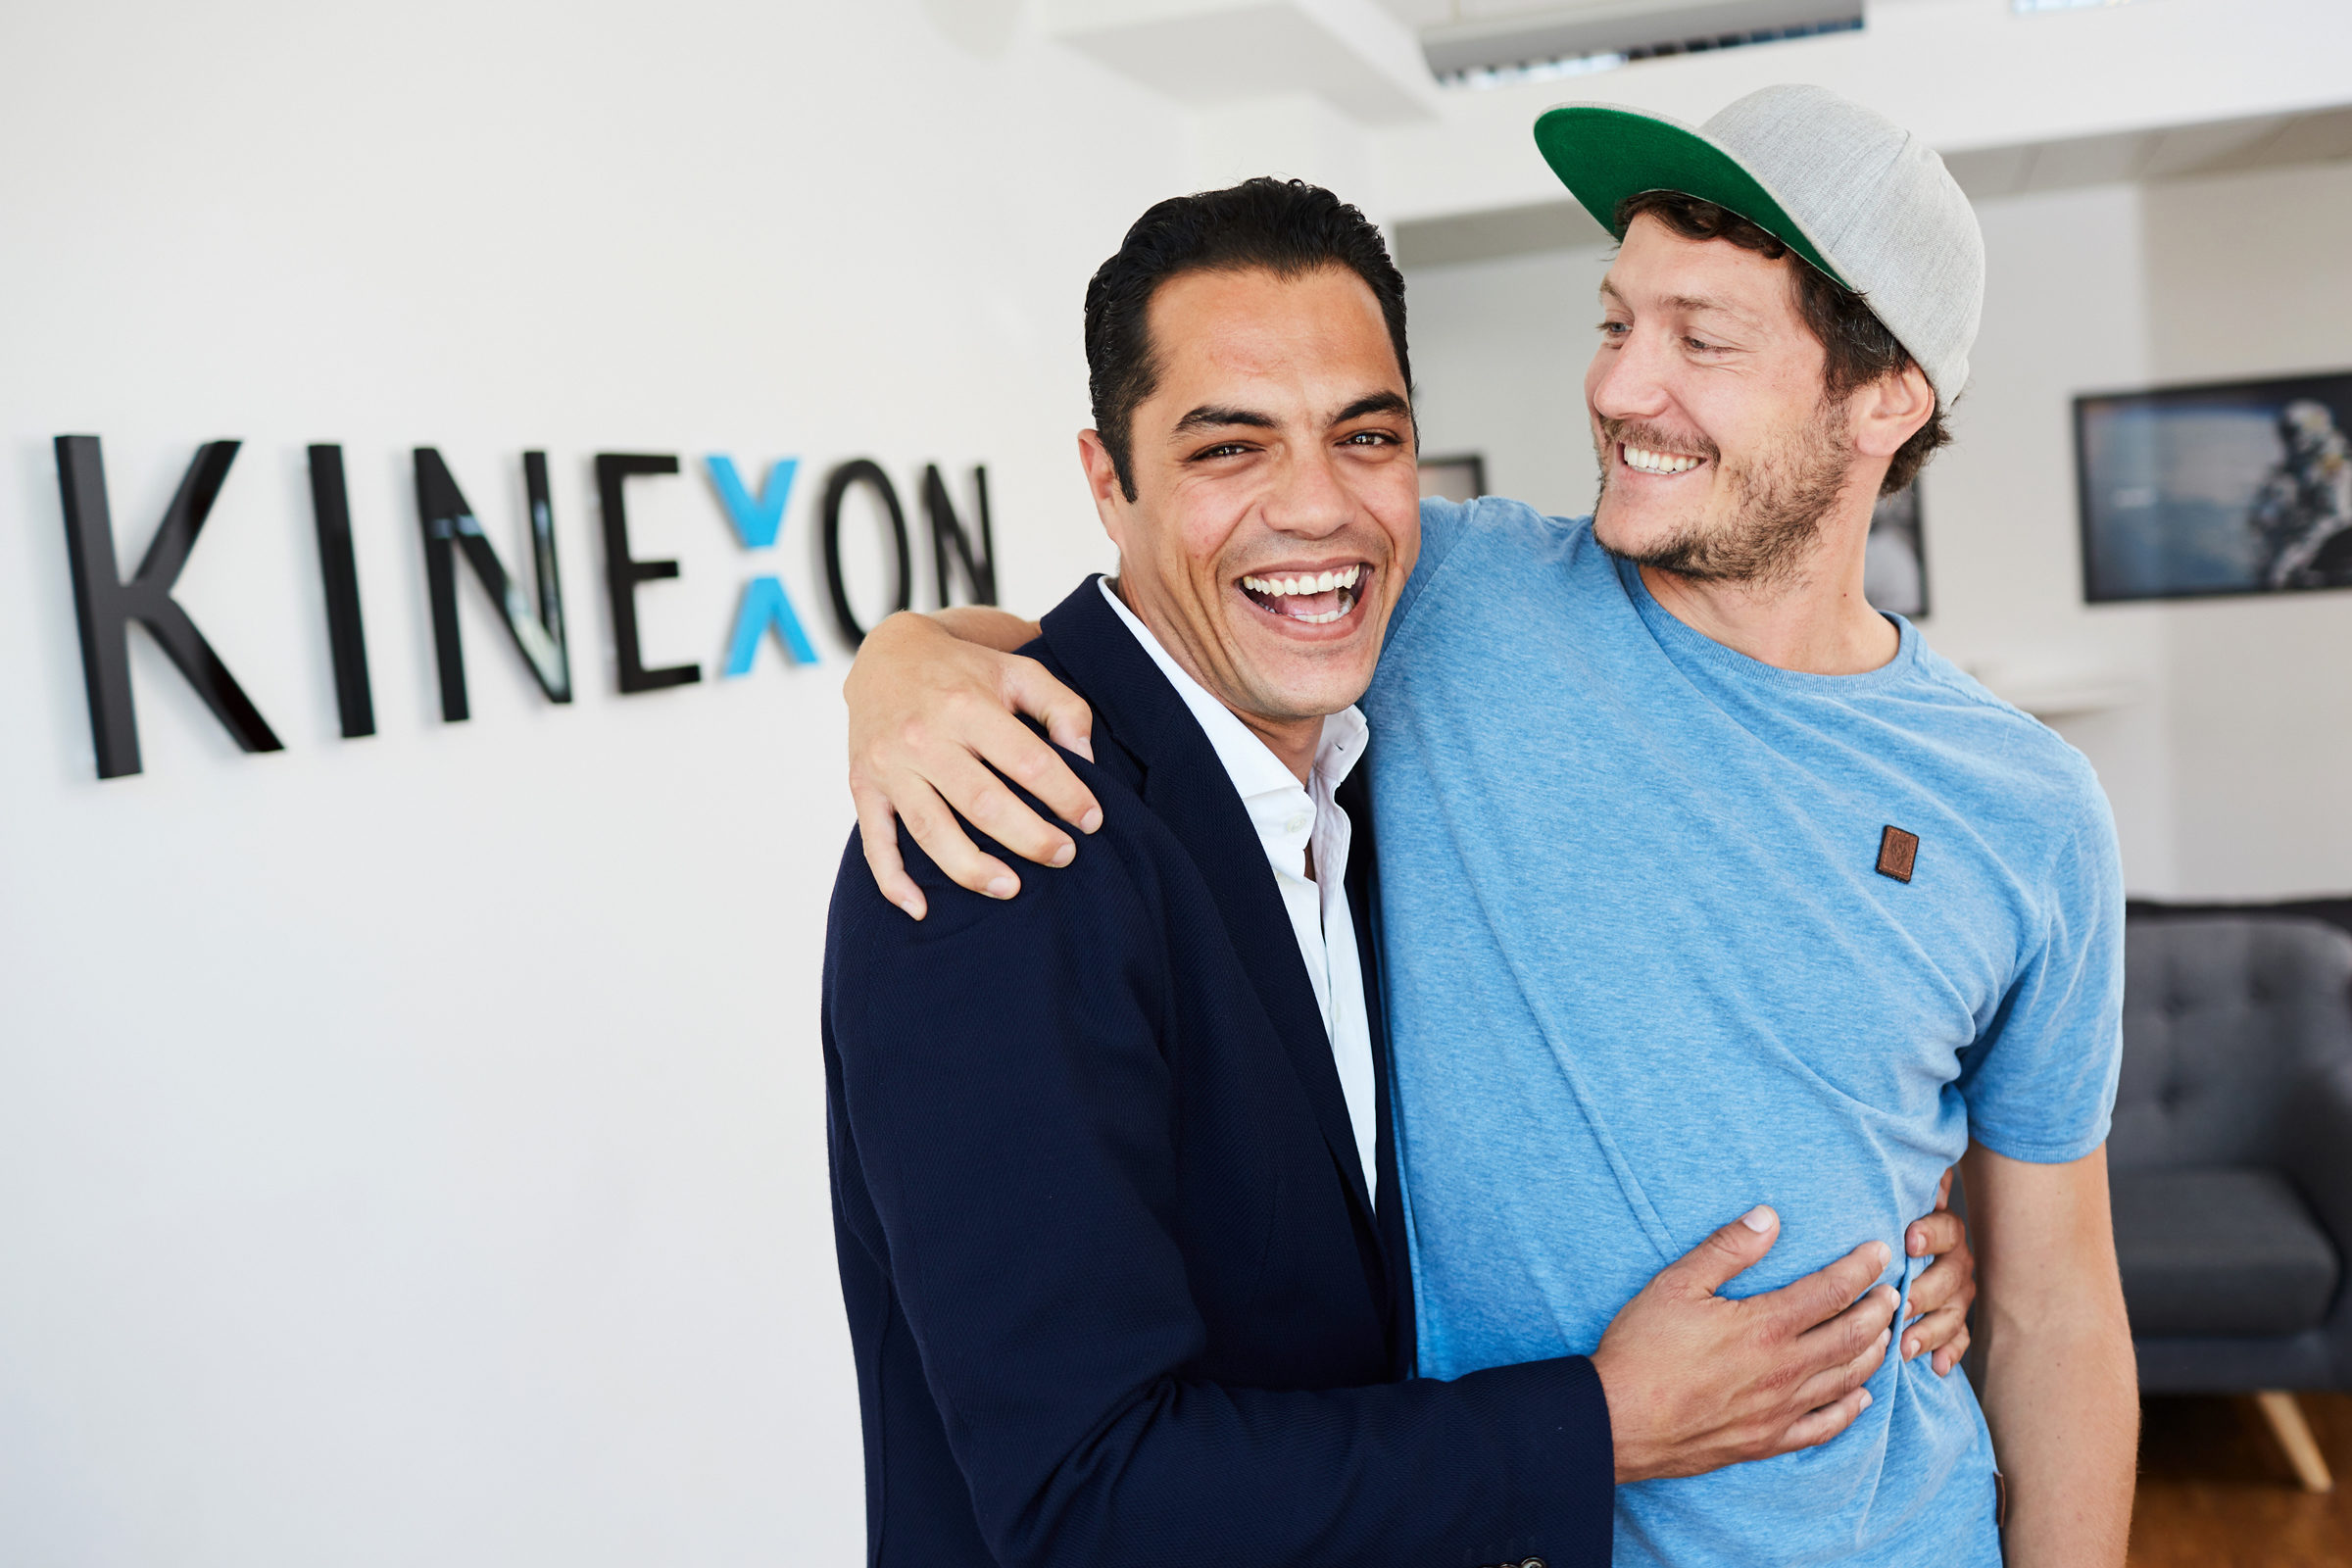 Mehdi Bentanfous and Patrick Emde in front of the KINEXON wall